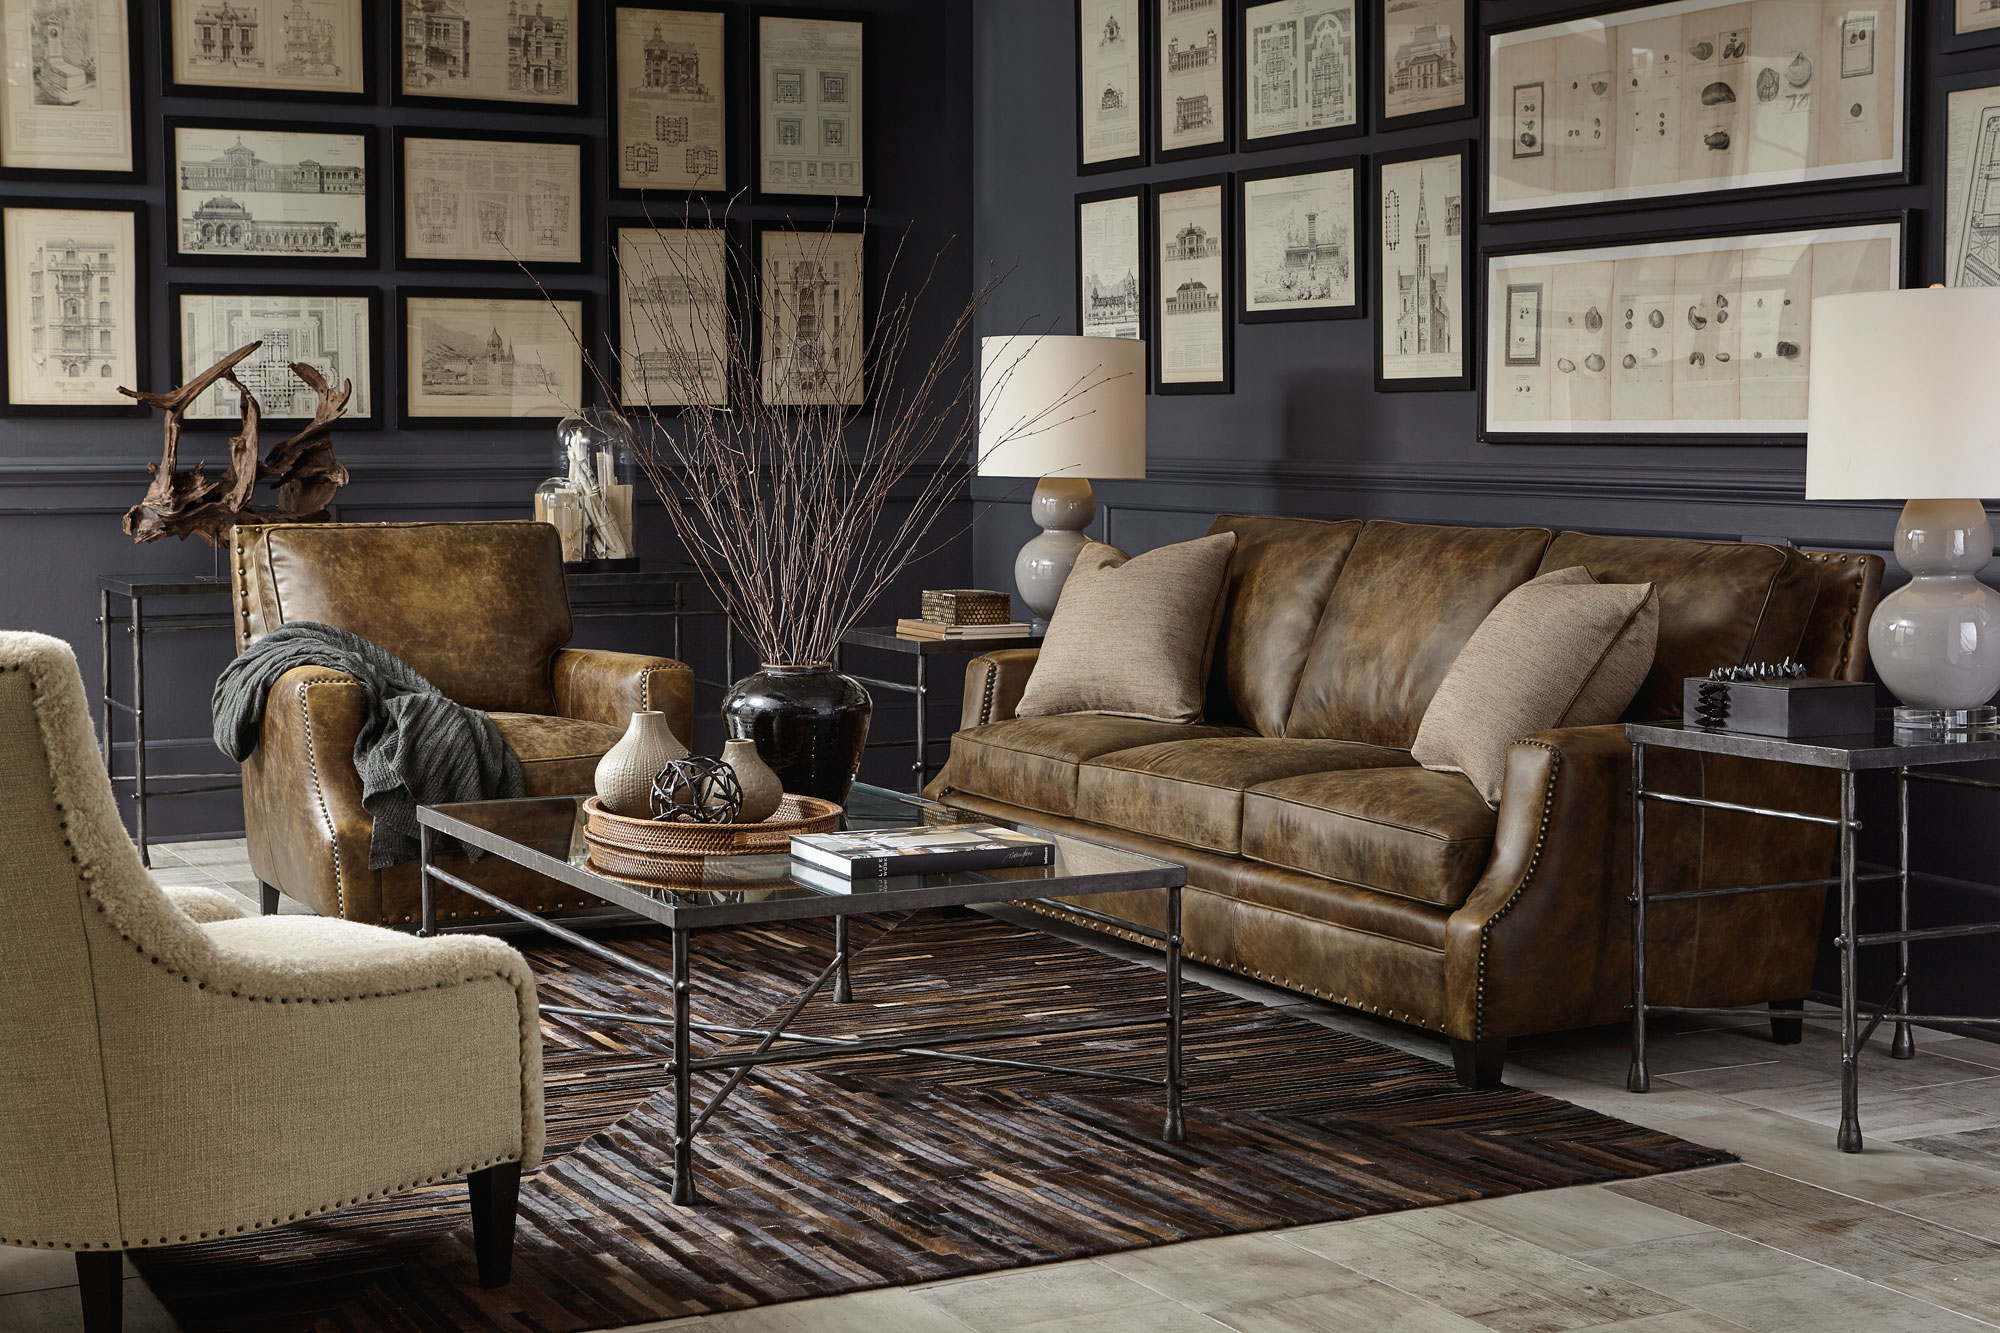 Leather Furniture You BOTH Can Agree Kathy Kuo Blog